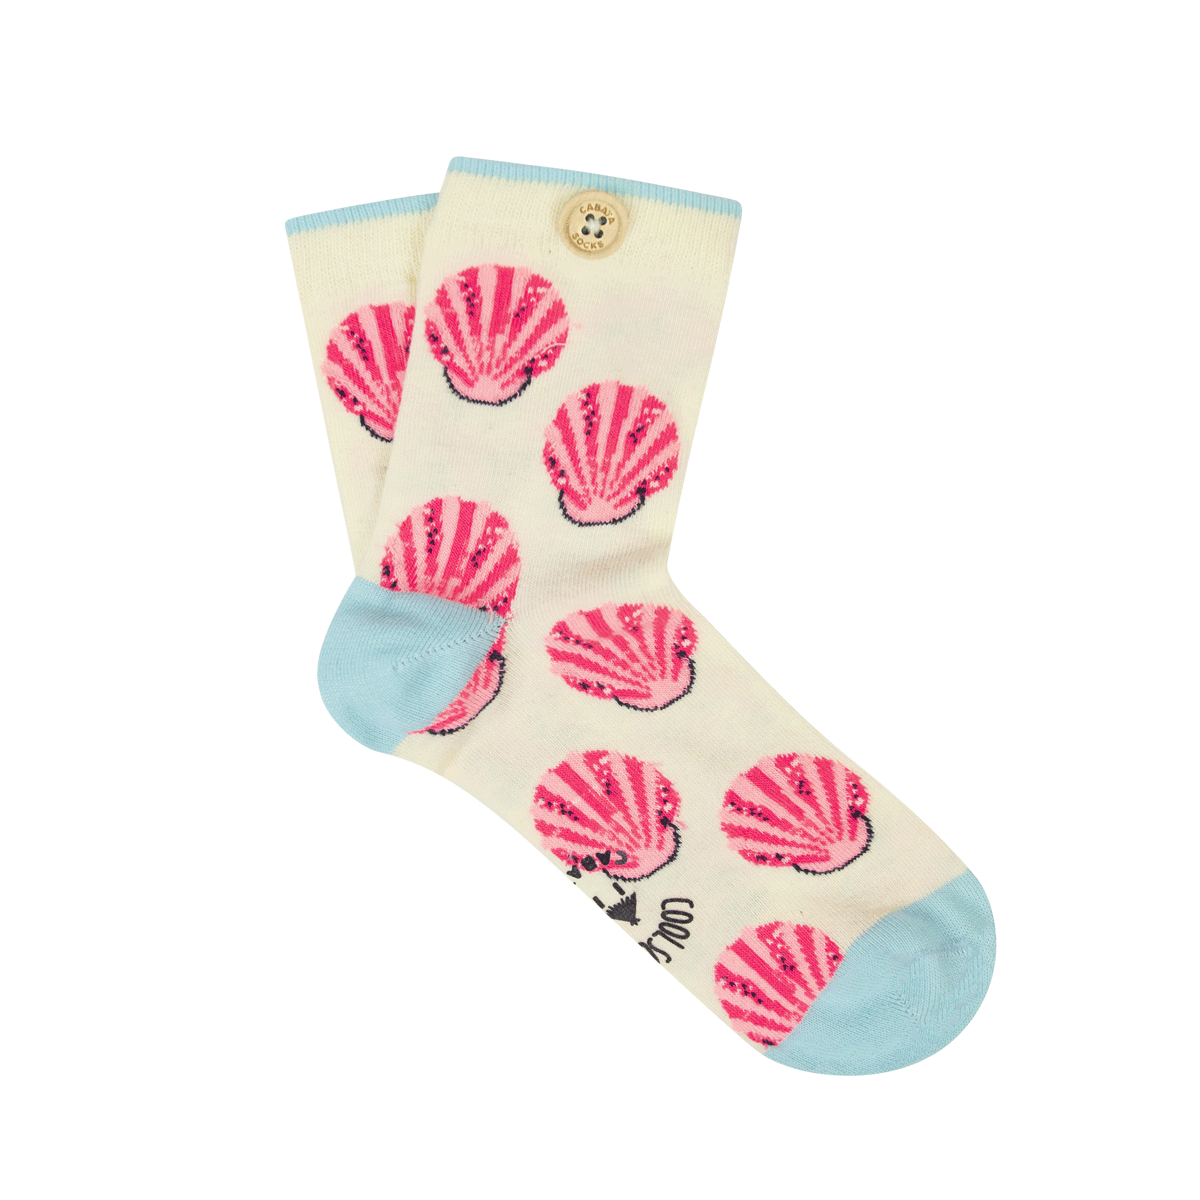 unloosable-socks-button-women-36-41-socks20-mail-gre